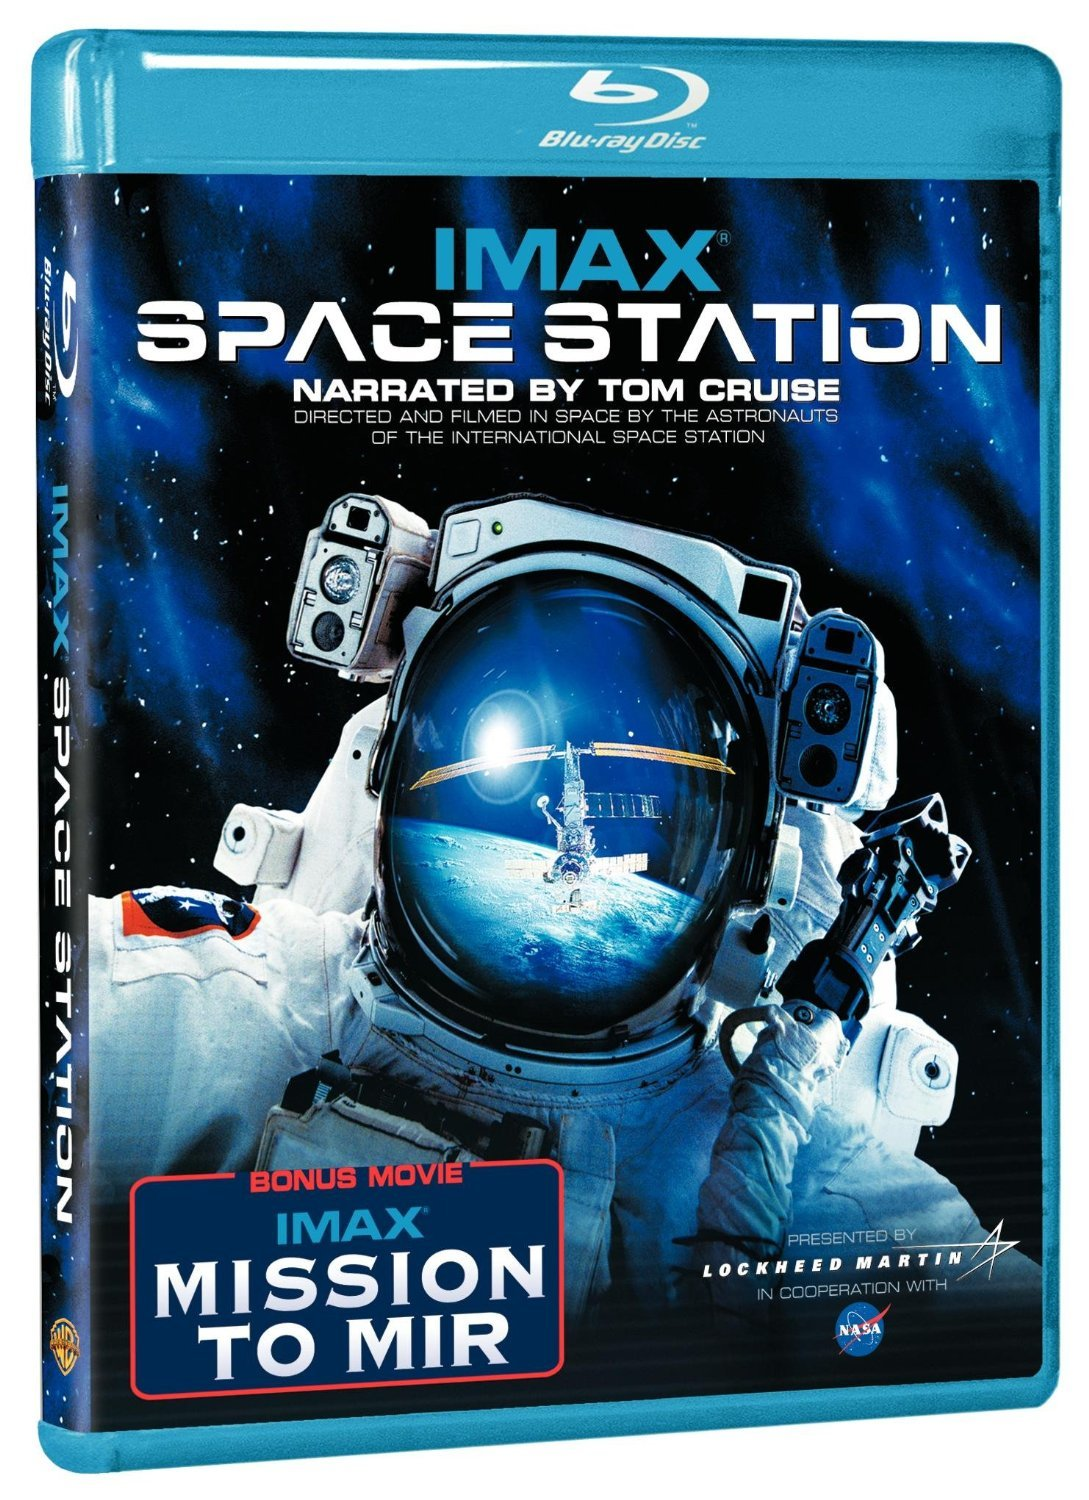 Imax Space Station/Mission To Mir (Blu-ray Disc, 2008) OOP